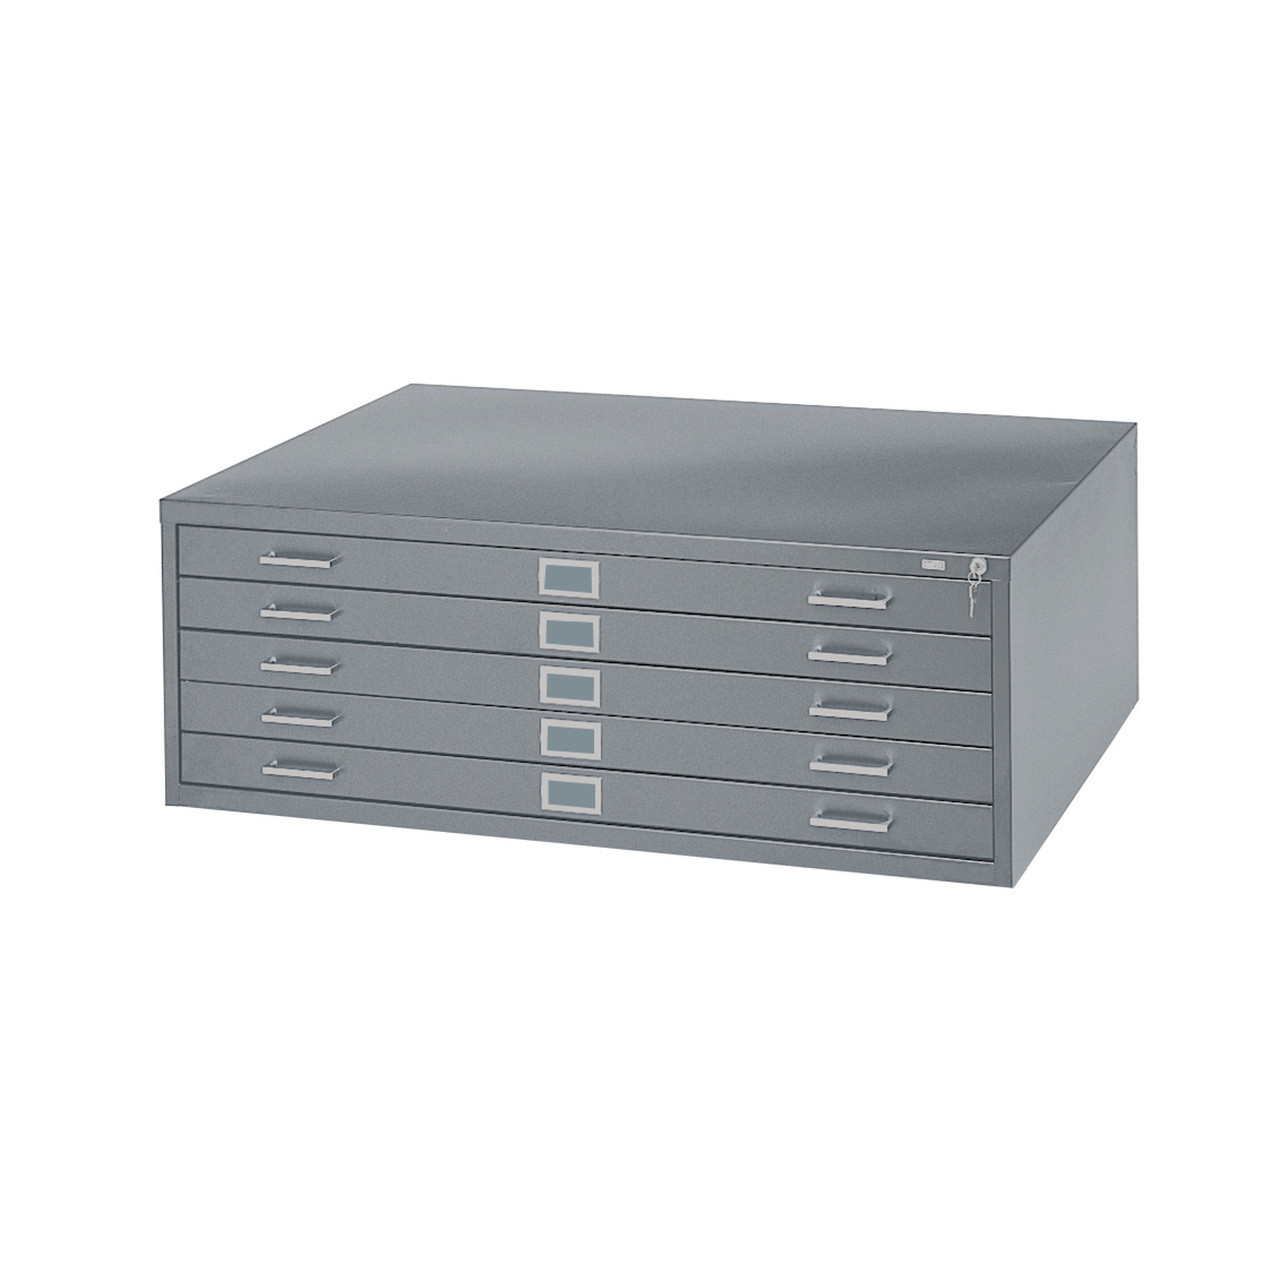 "Safco 5-Drawer Steel Flat File for 24"" x 36"" Documents"